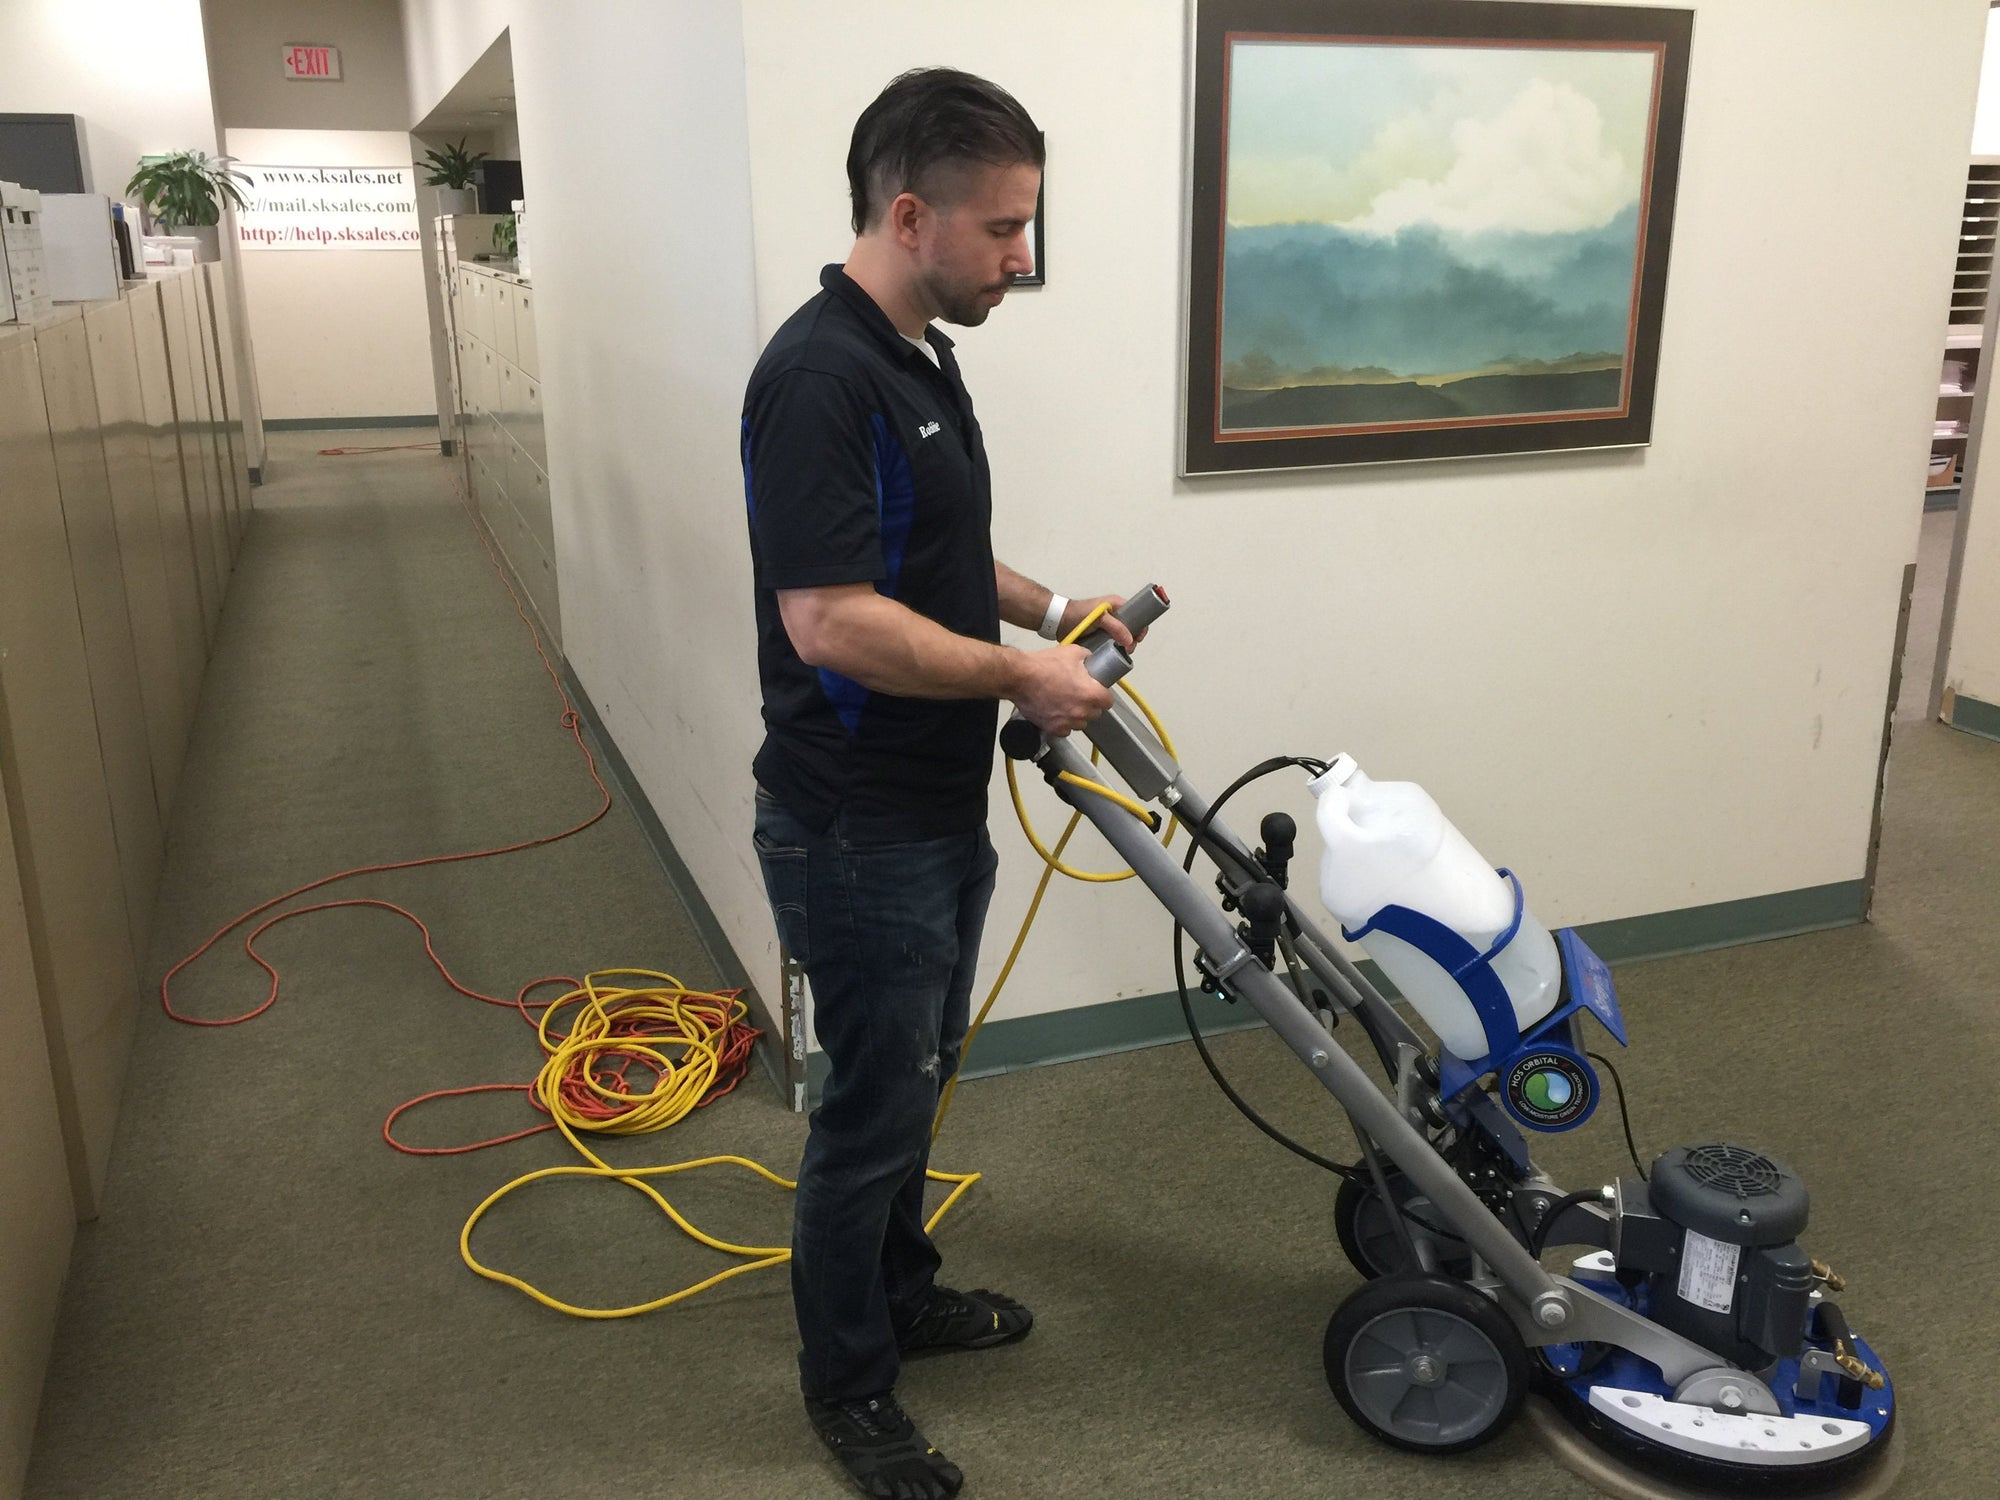 VLM CLEANING (Encapsulation) Course - TMF Store: Carpet Cleaning Equipment & Chemicals from TruckMountForums